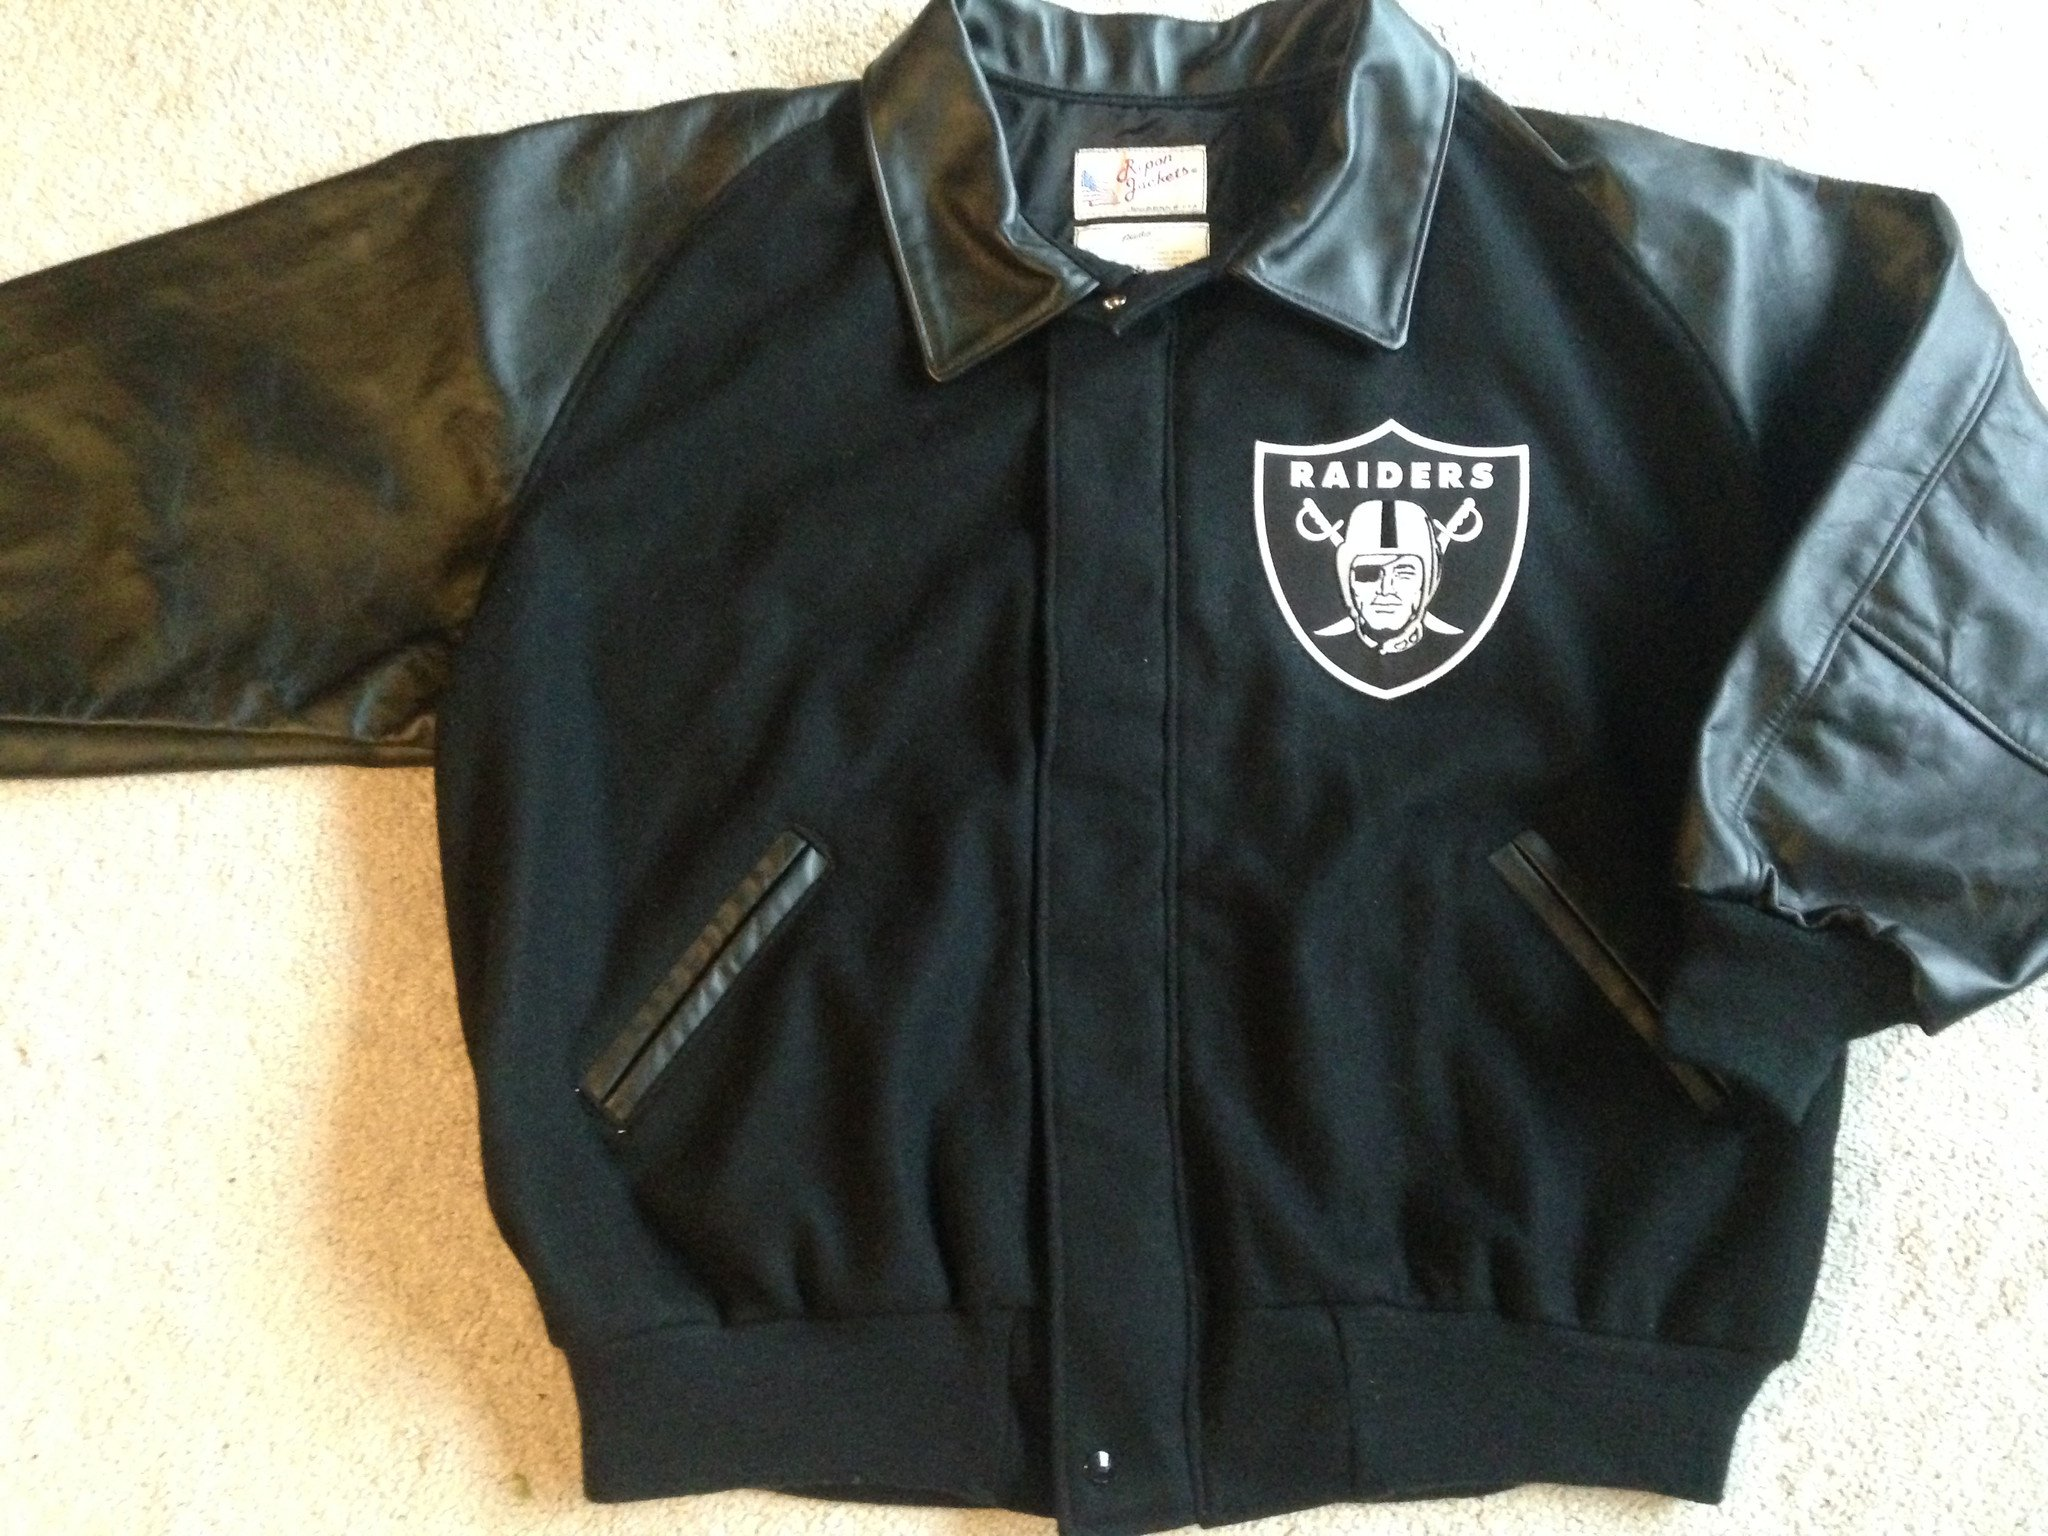 Nfl Raiders Jacket | Raiders Letterman Jacket | Raider Jacket